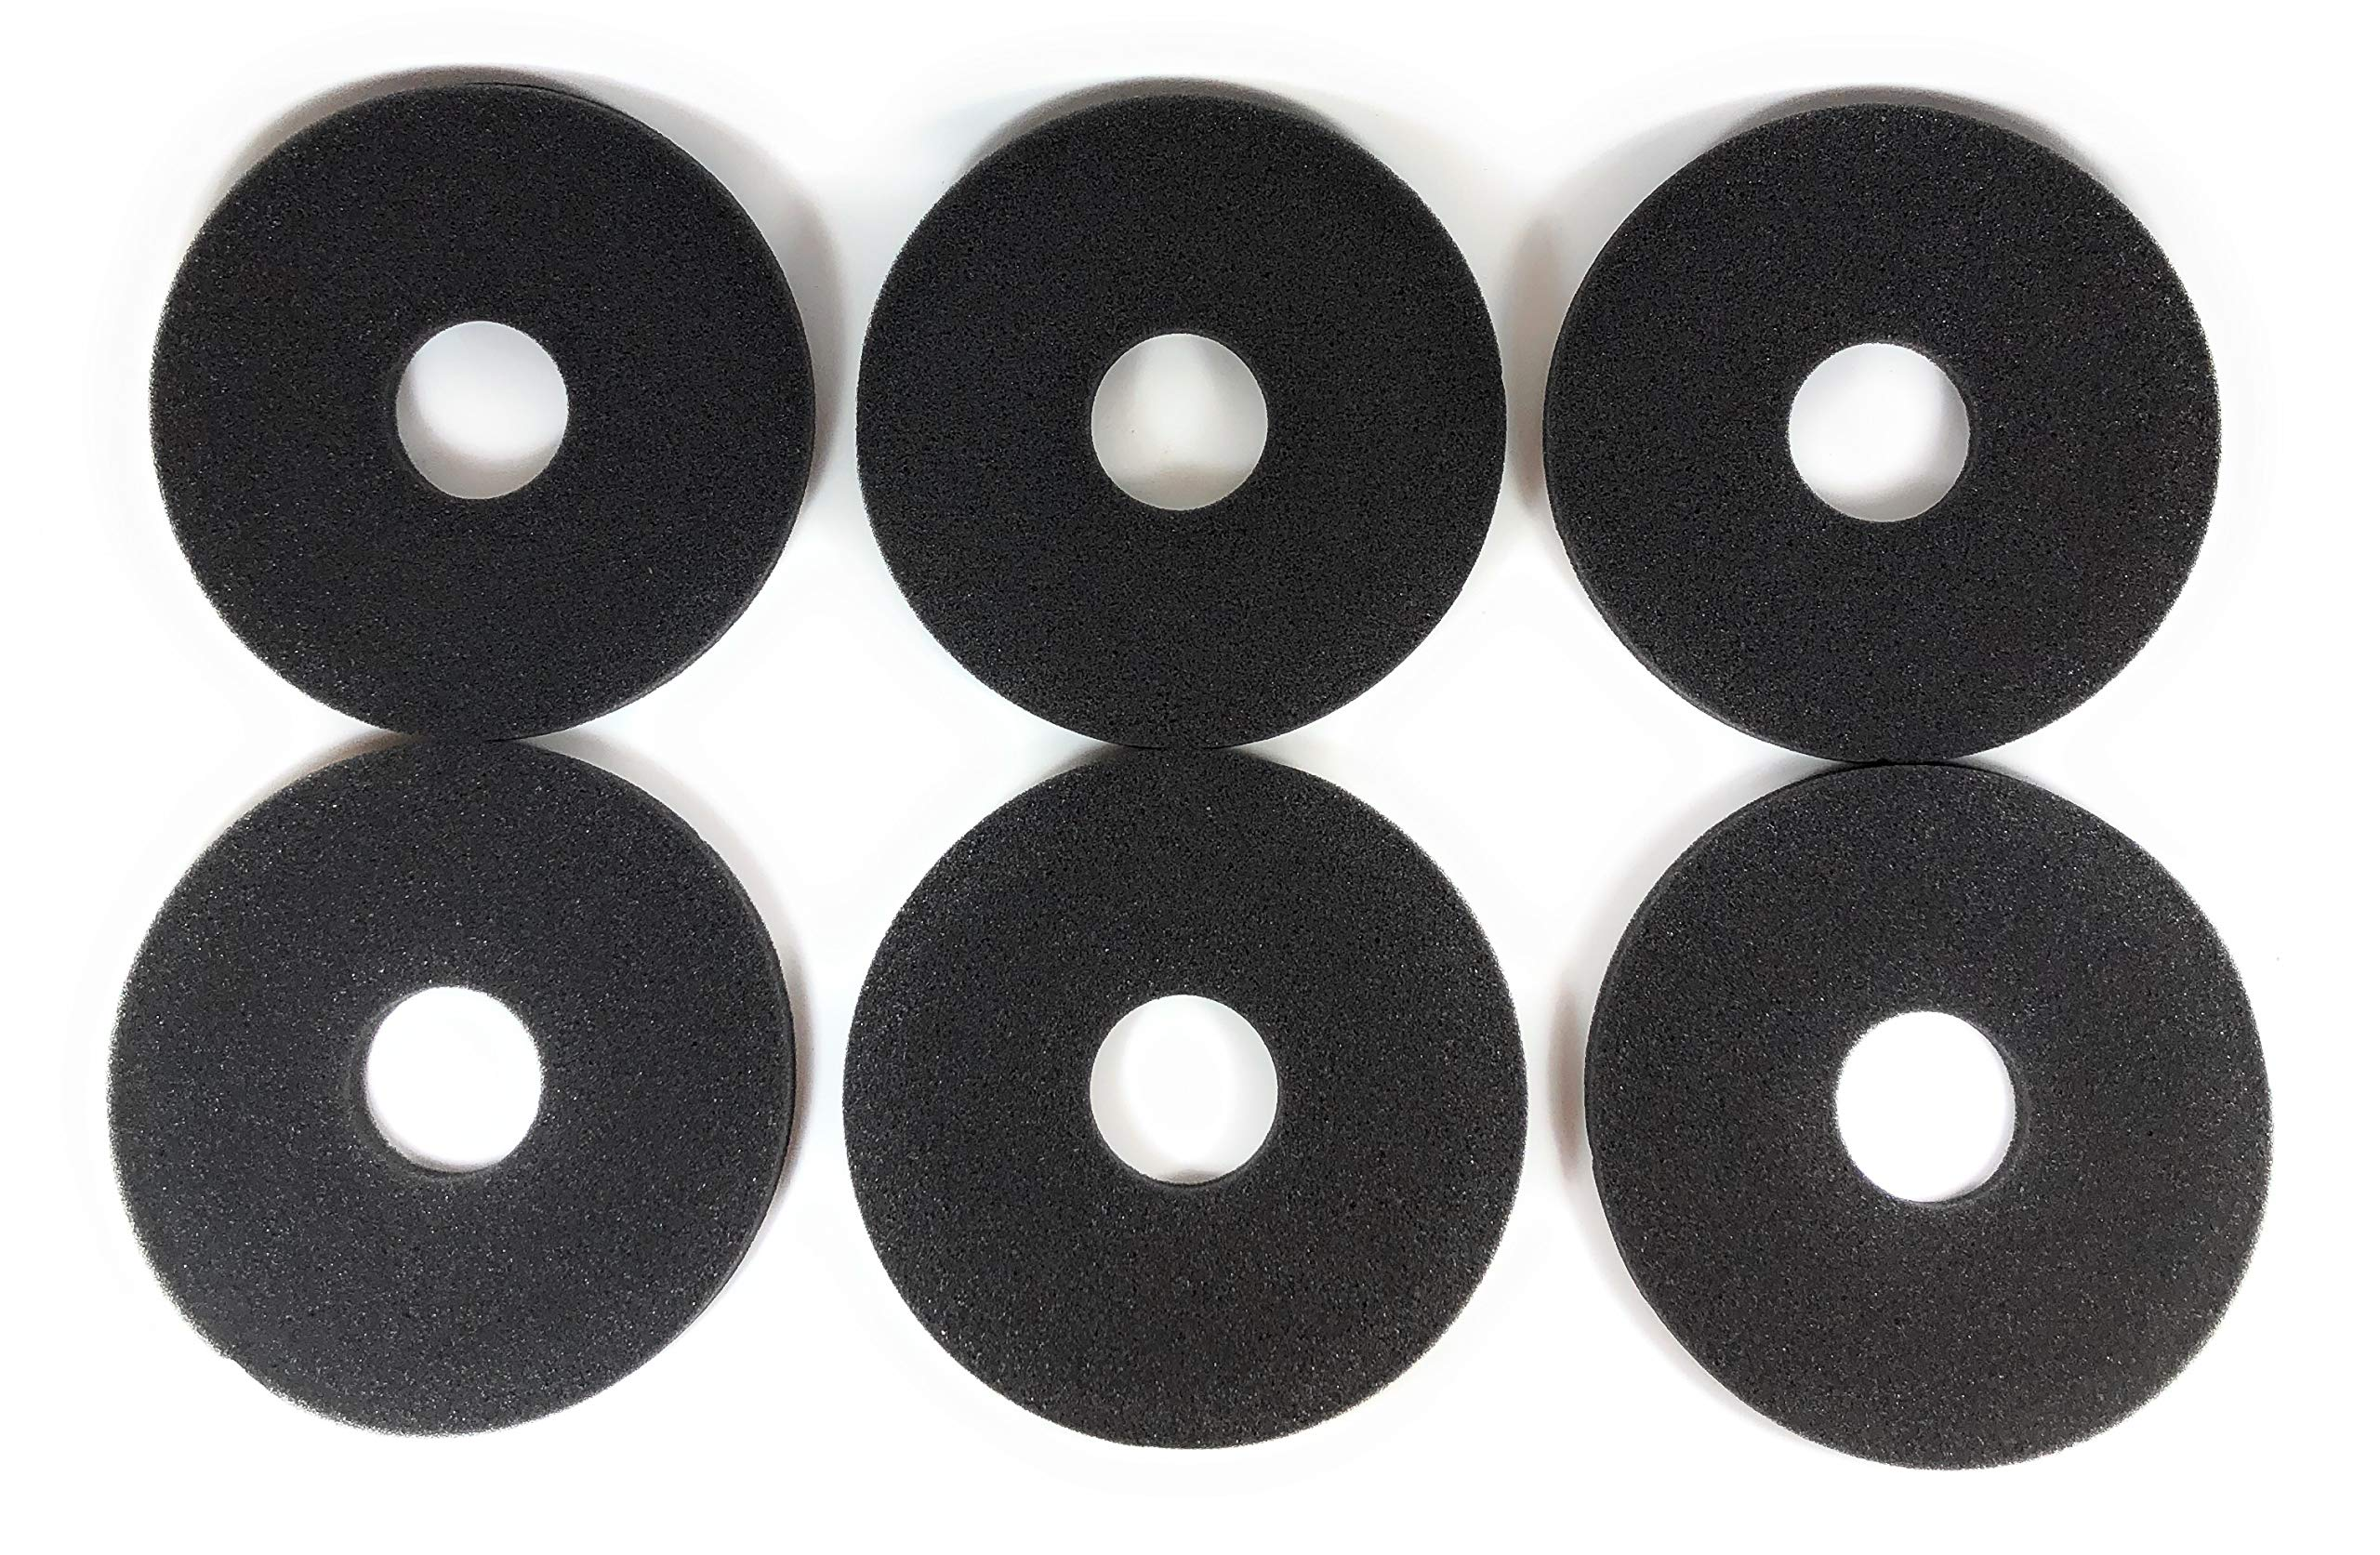 Margarita Salt Glass Bar Rimmer Replacement Sponges Set of 6, Black